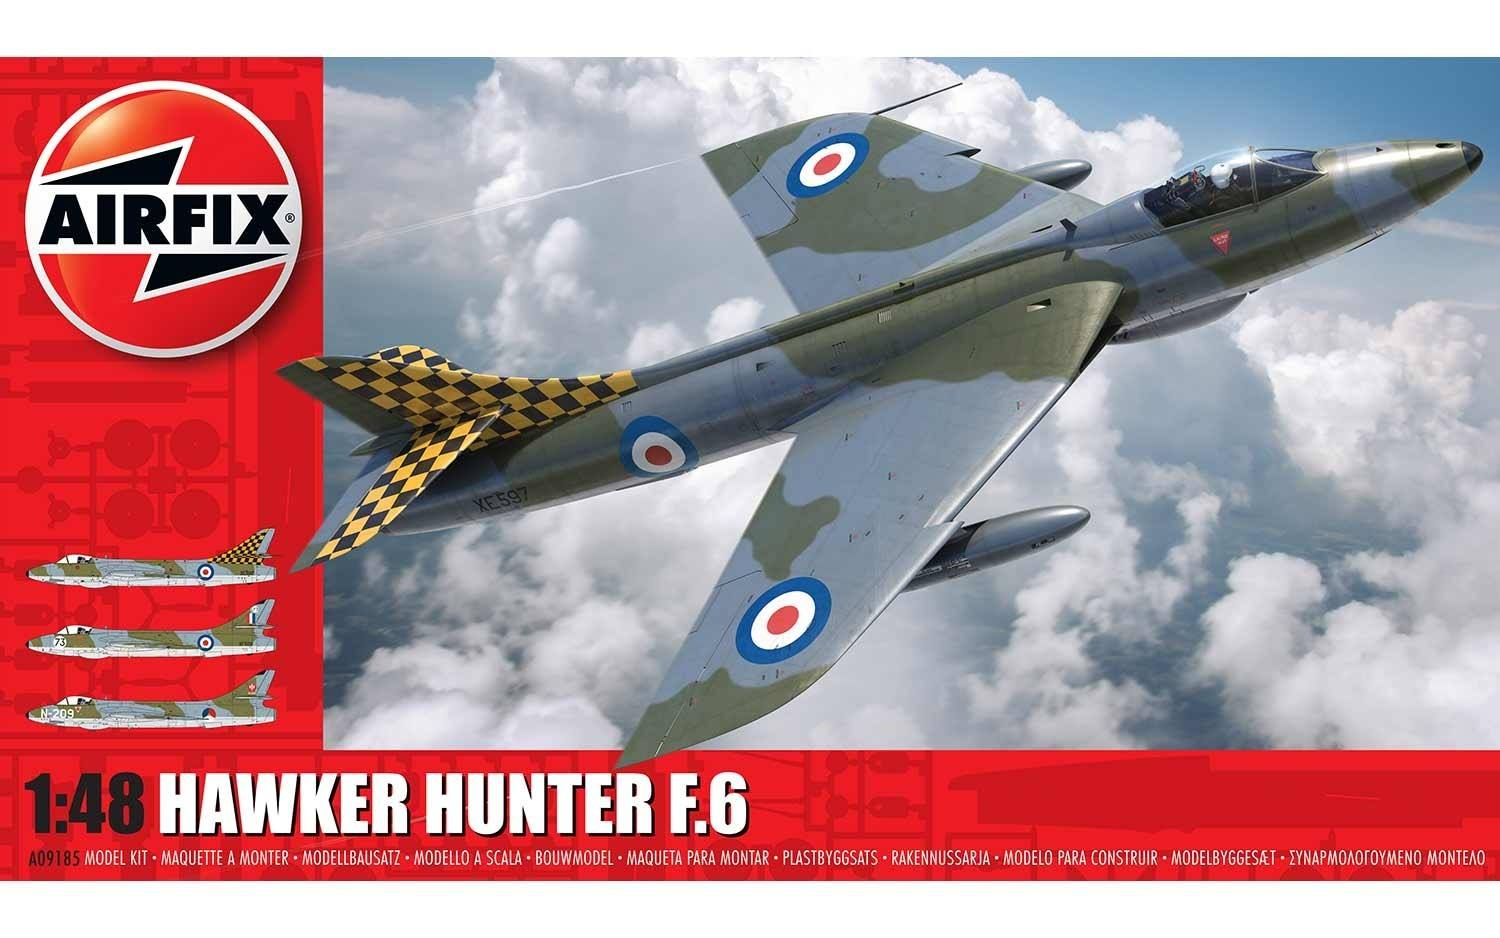 Hawker Hunter F.6